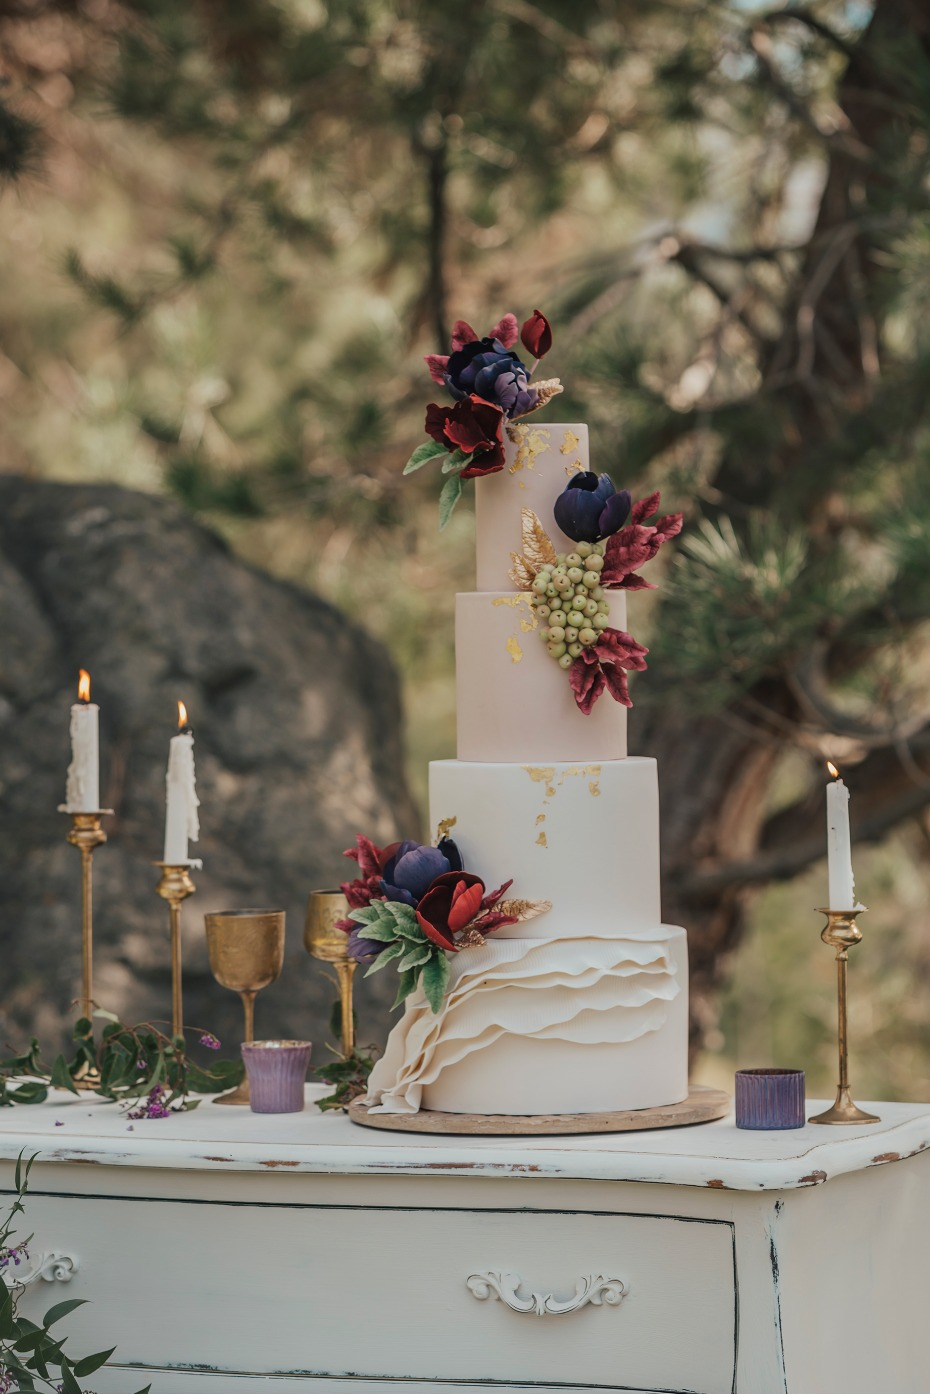 Gold foil wedding cake with edible flowers